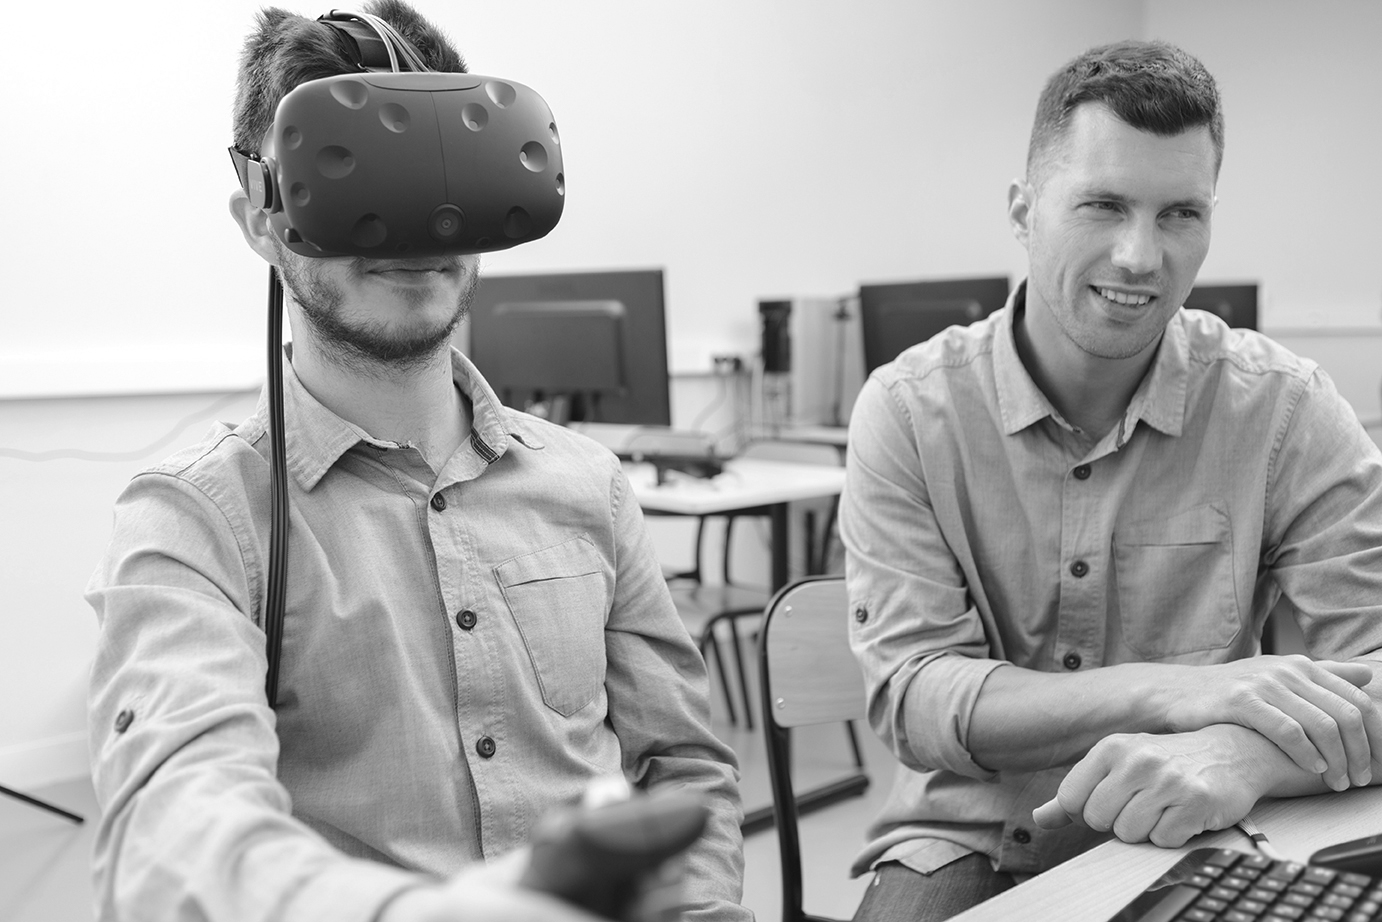 young man in technology lab using virtual reality headset